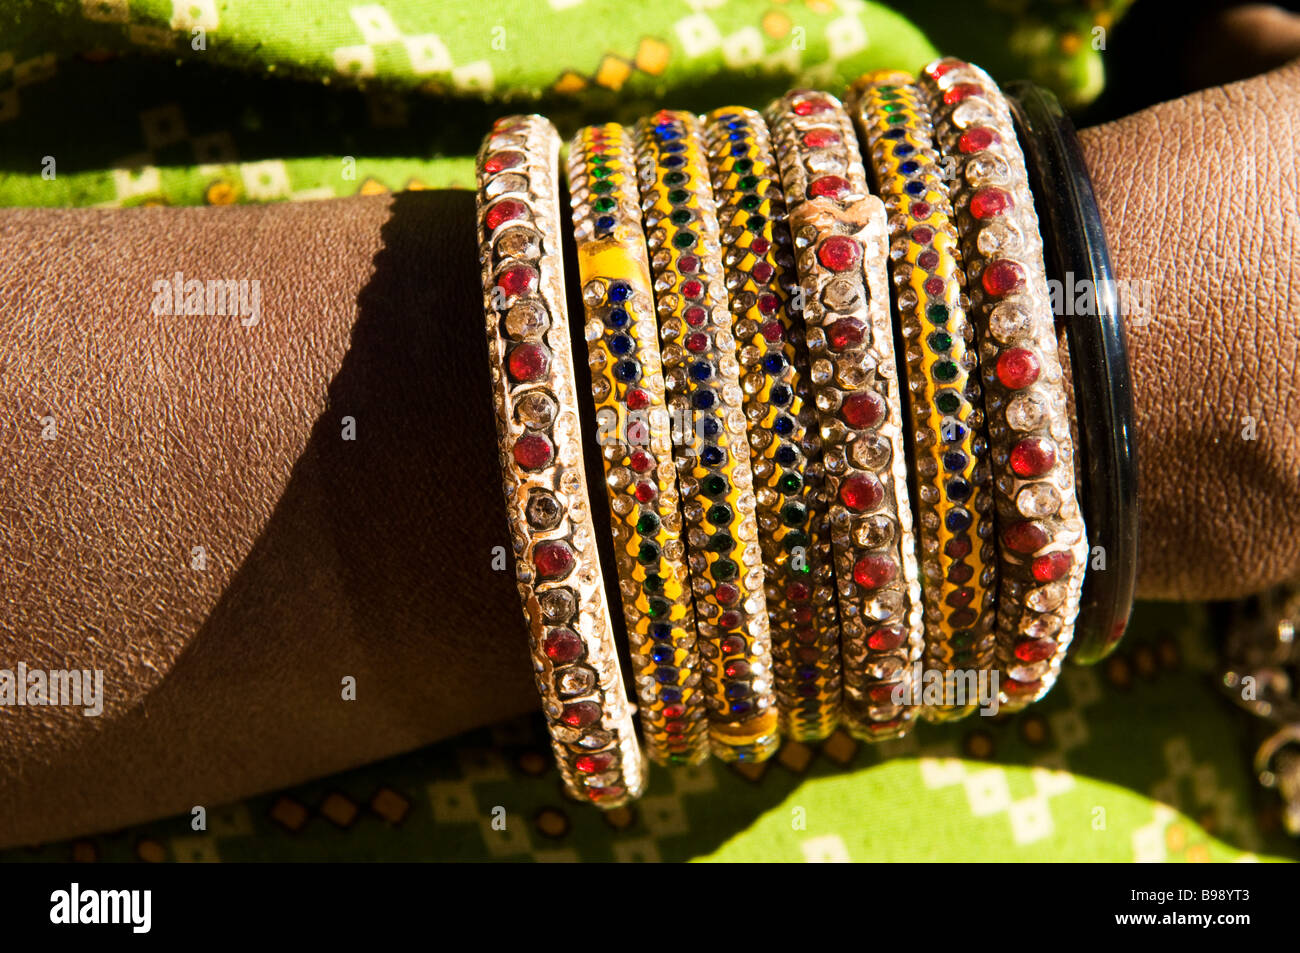 A model exhibits beautiful bangles on her hand Stock Photo ...